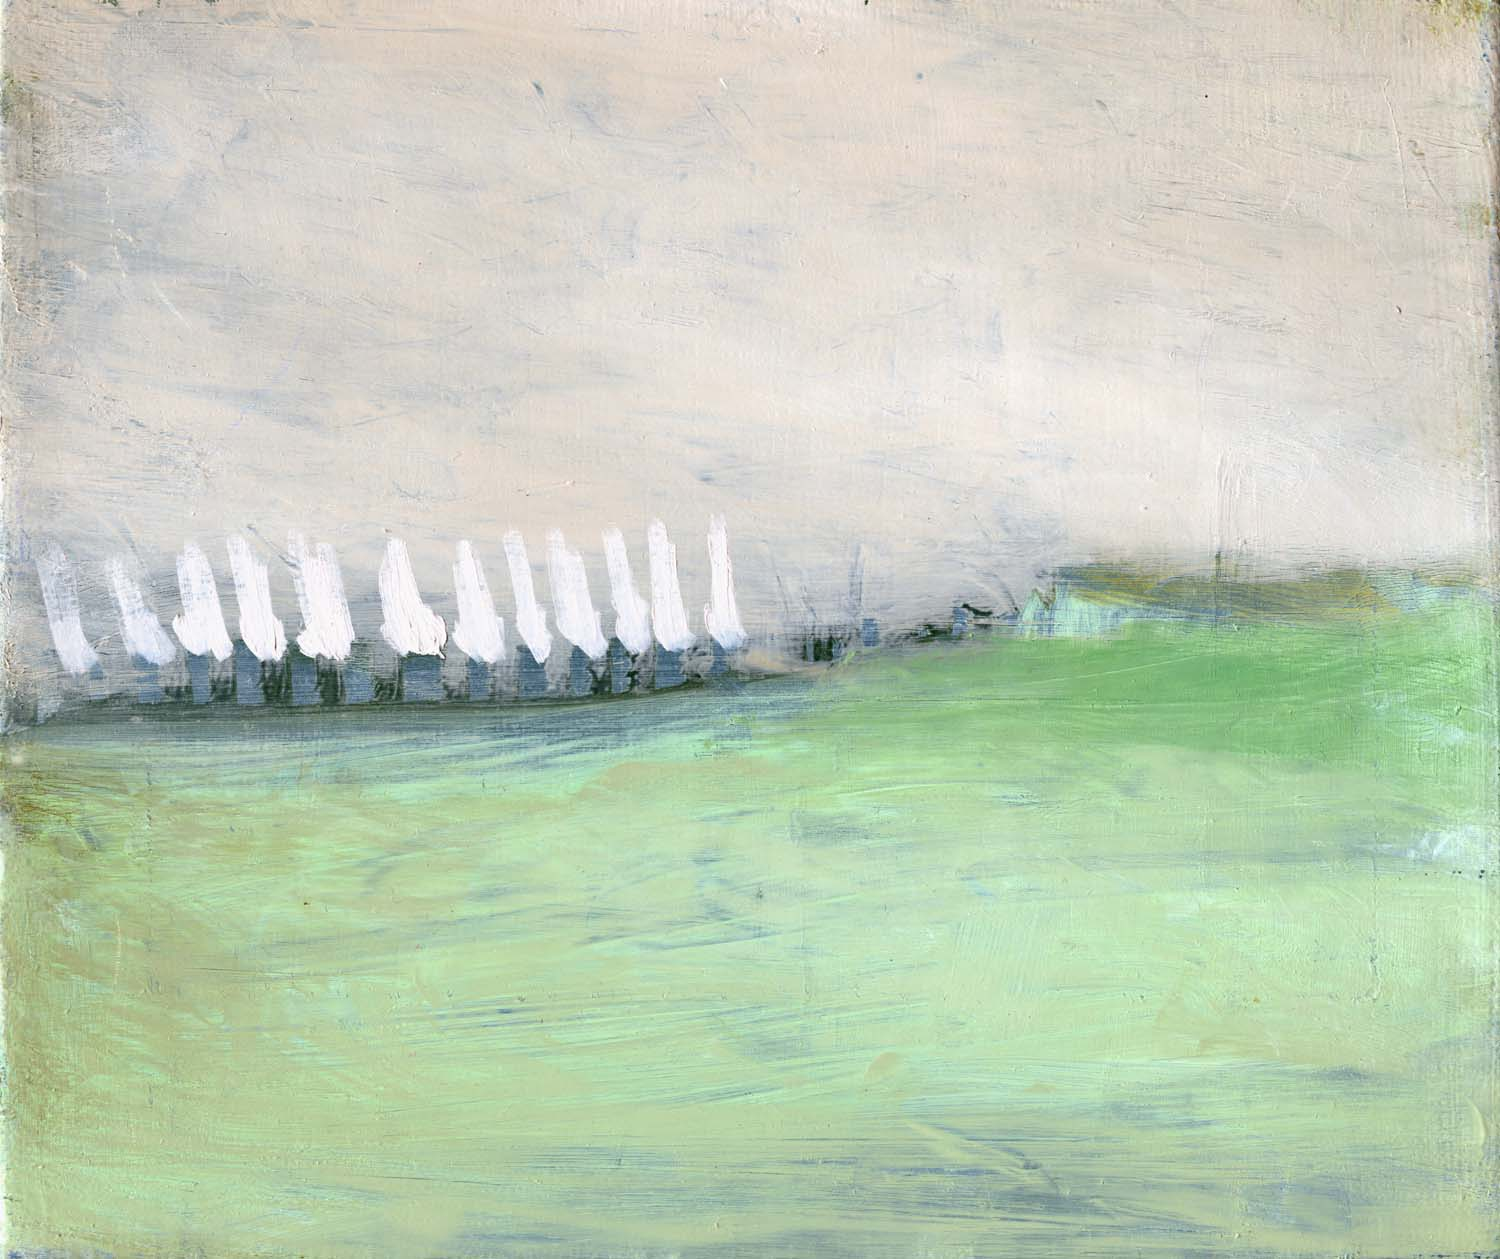 Meteorological Situation at 16.00 hours , 2008 22 x 26 cm oil on canvas